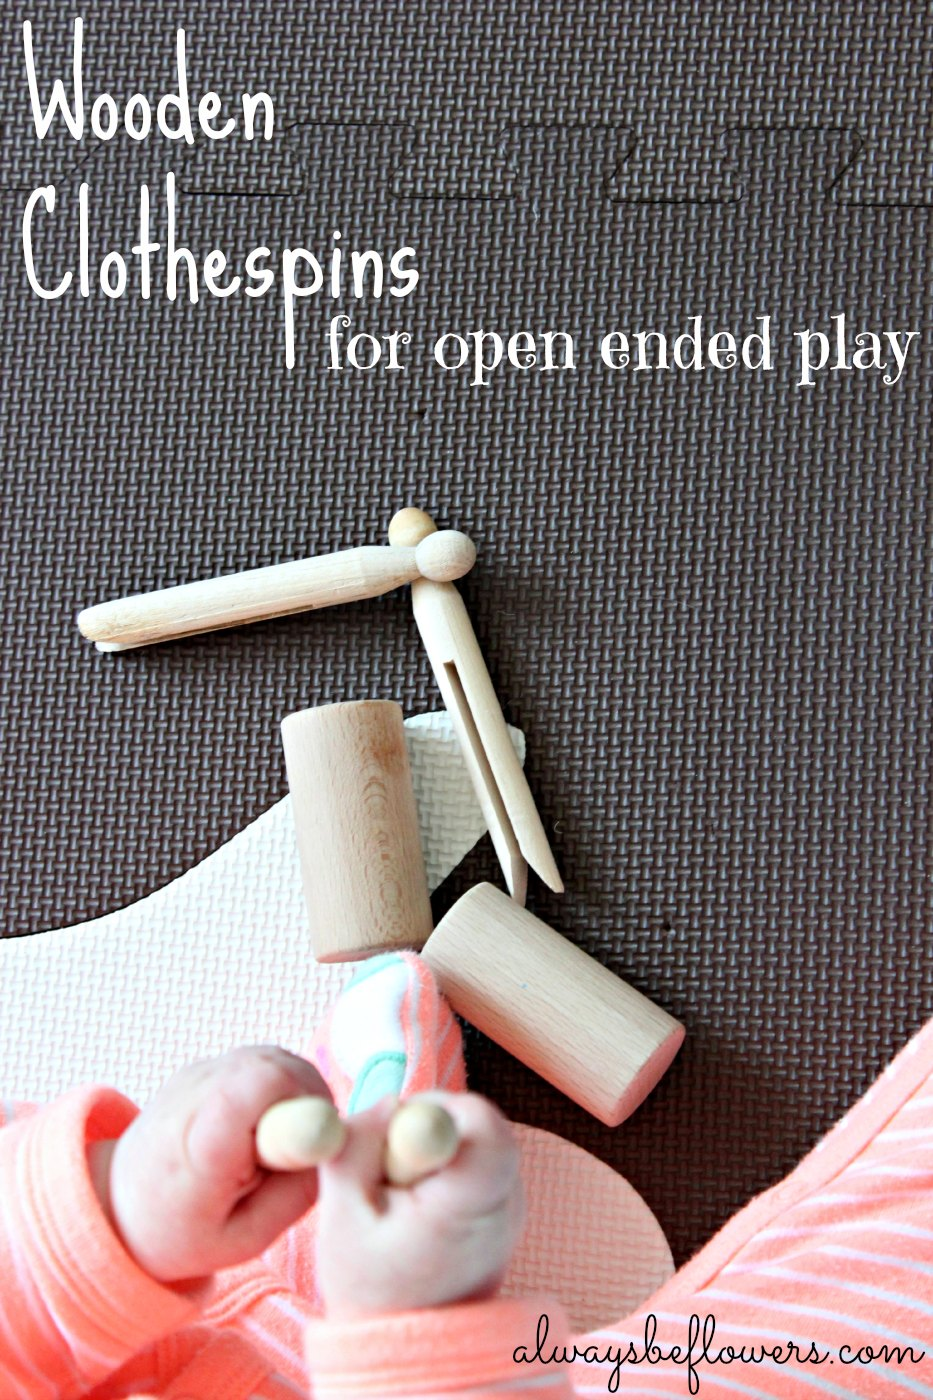 wooden-clothespins-open-ended-play.jpg